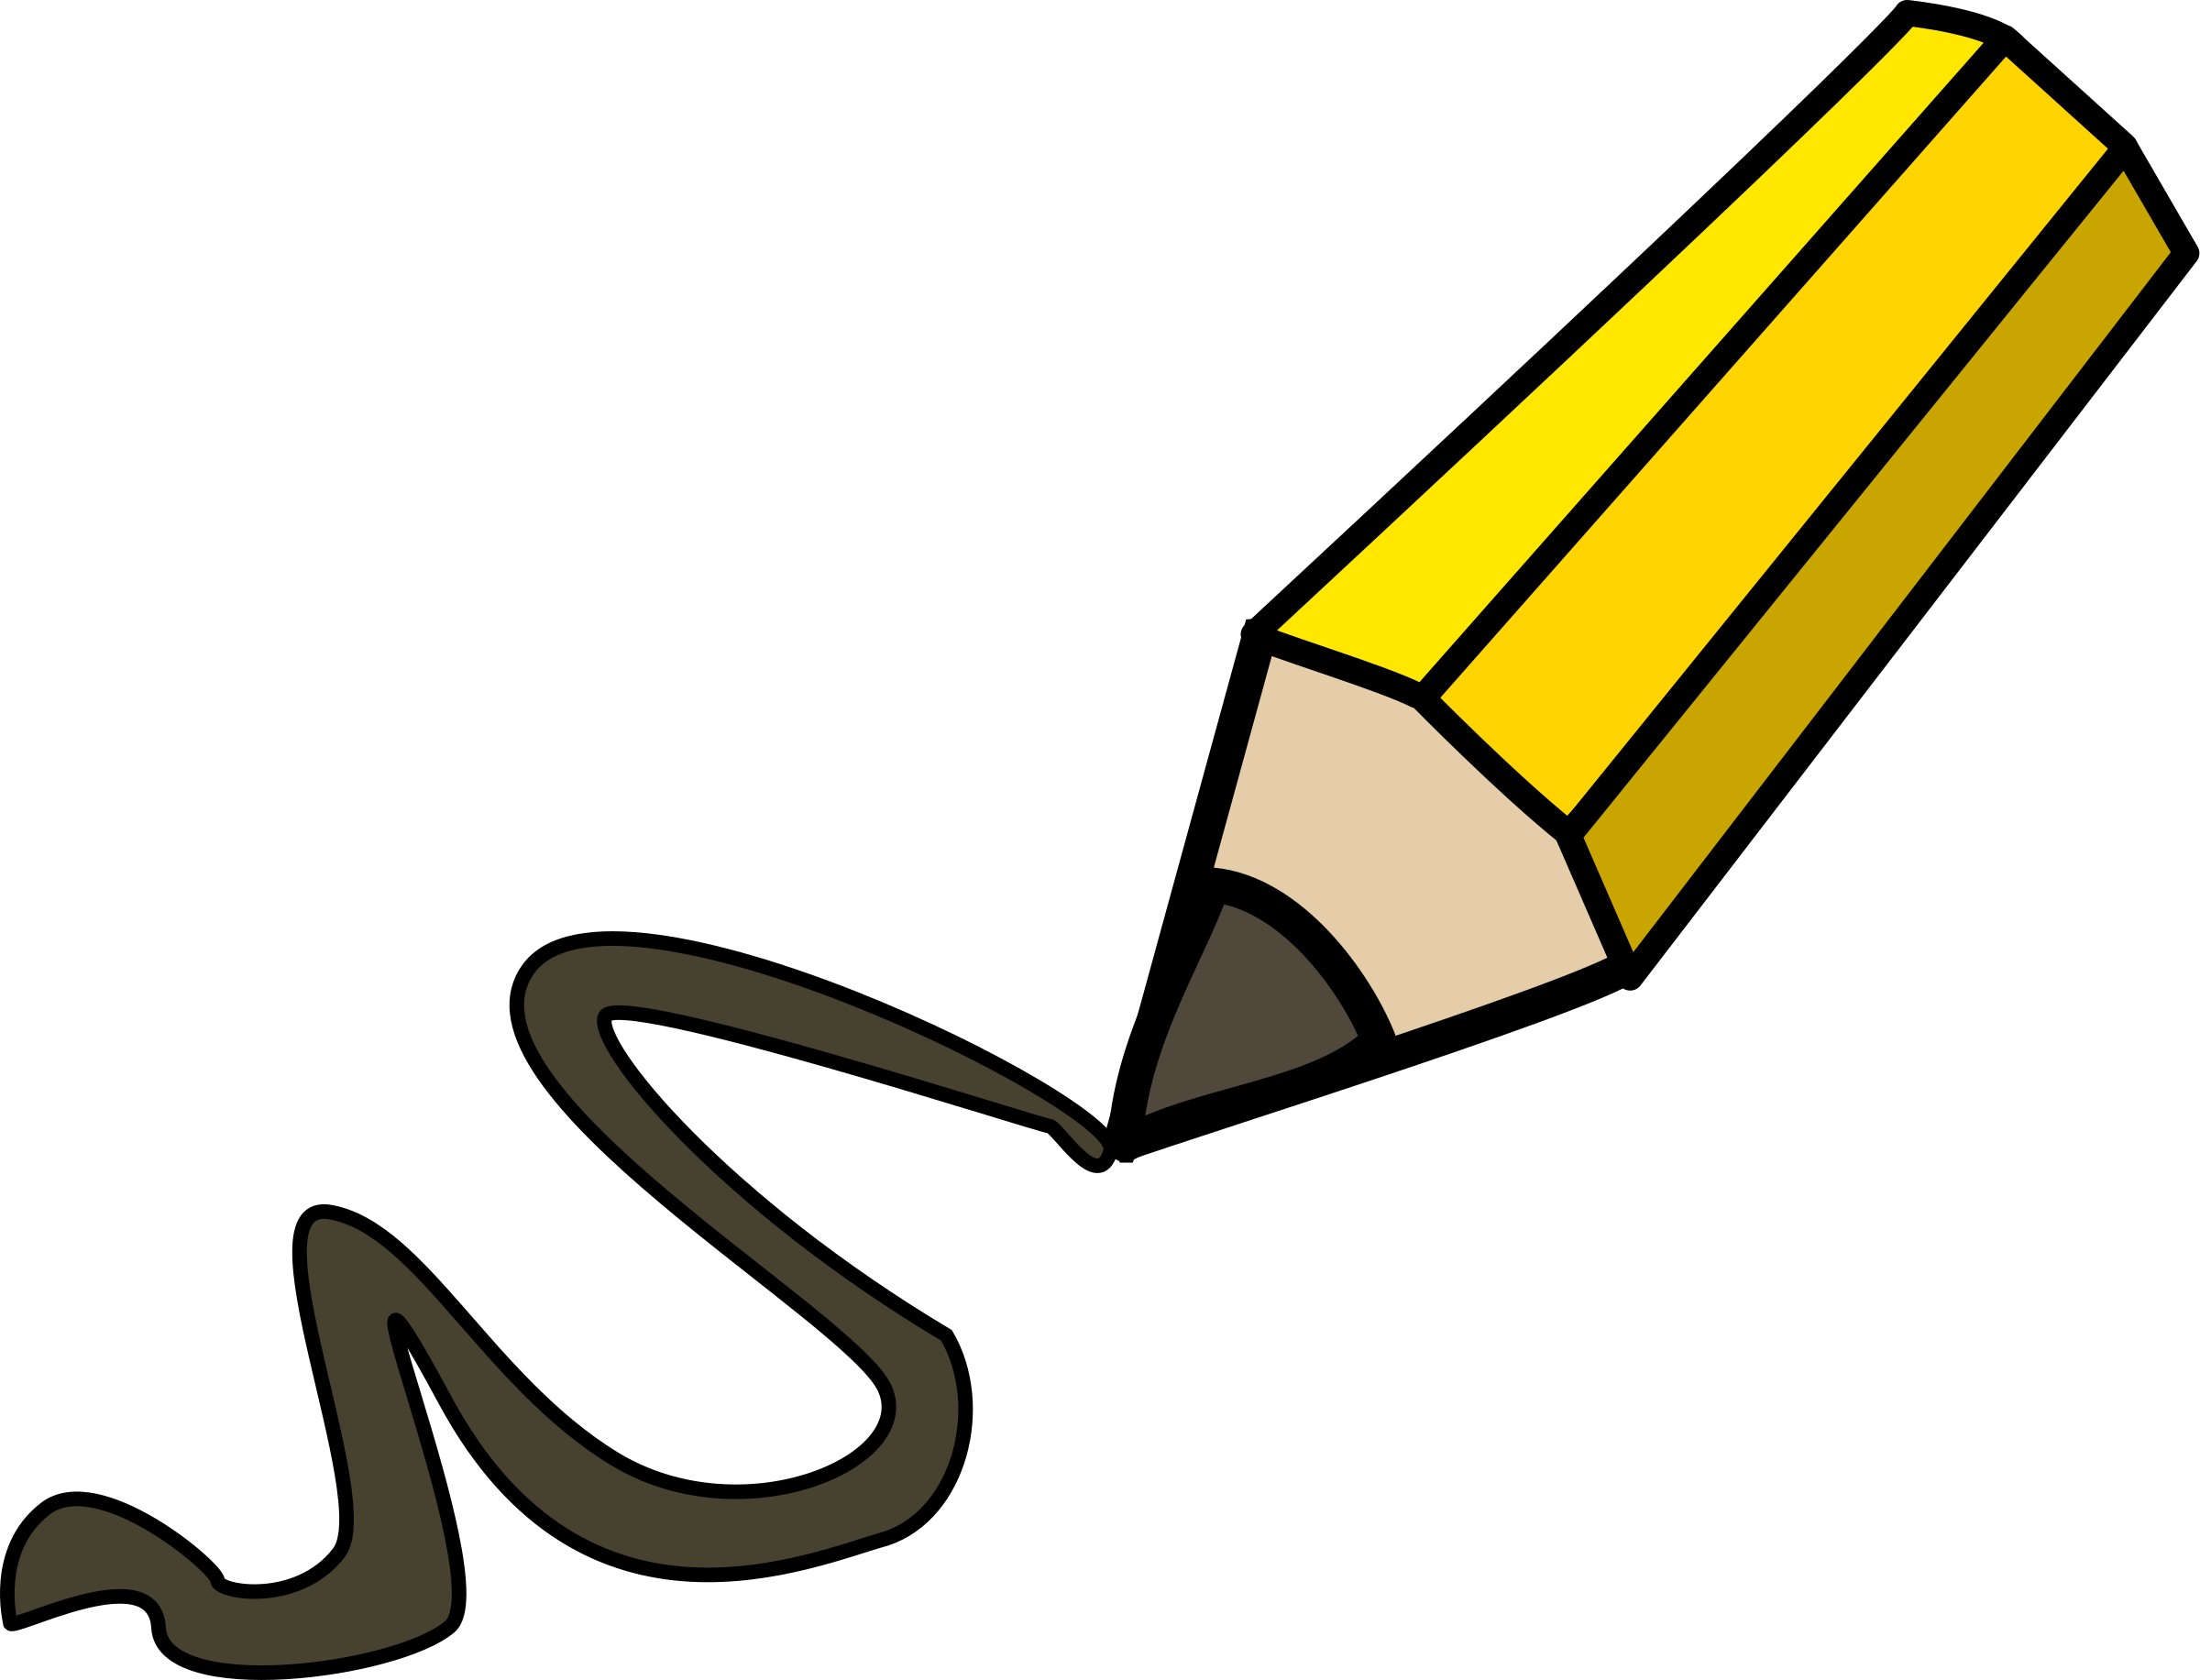 Pencil doodling big image. Write clipart task clipart royalty free library